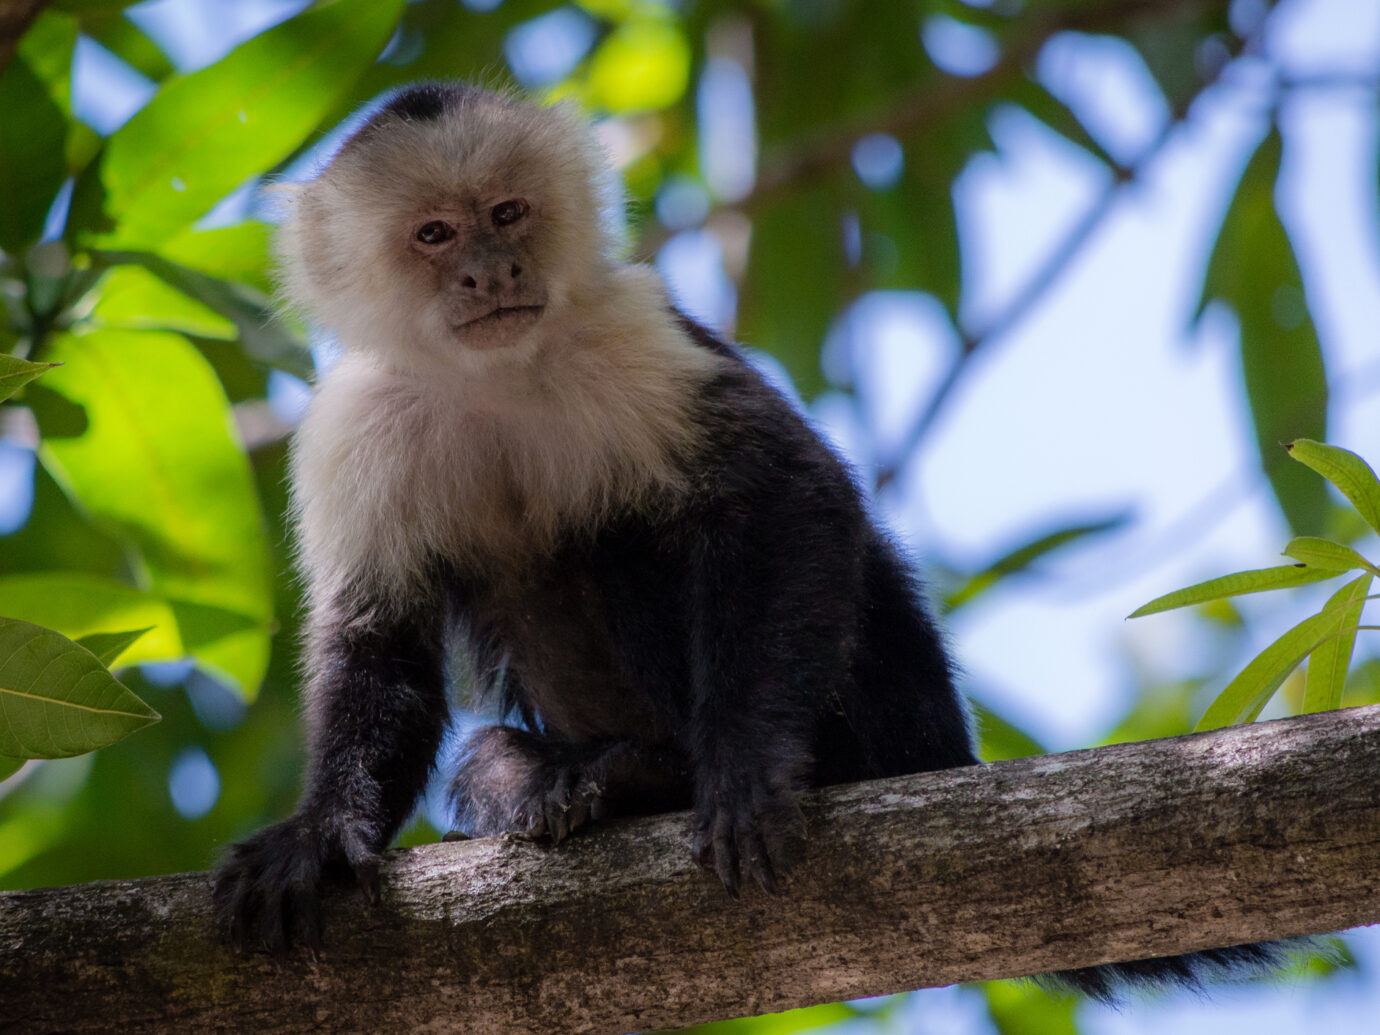 Caputin monkey spotted at Palo Verde national park in Costa Rica